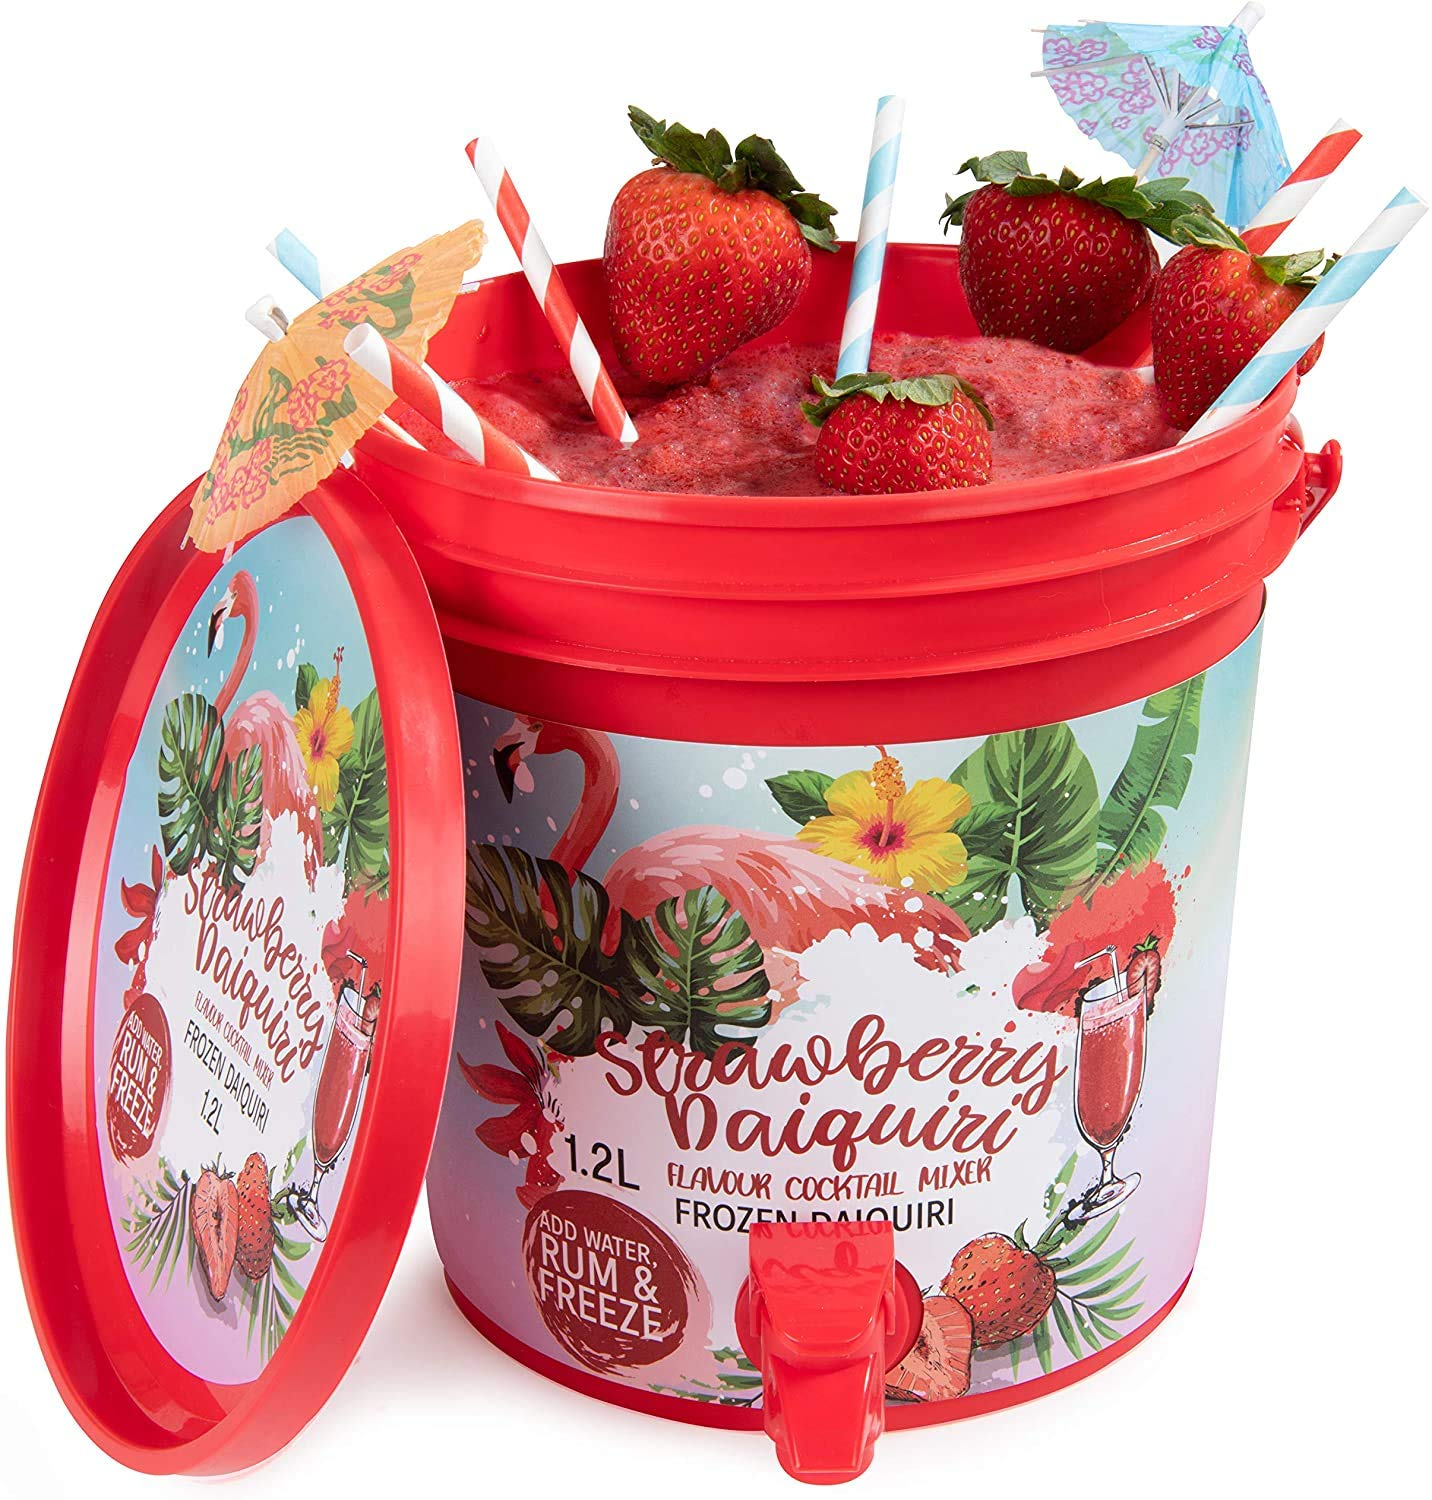 Thoughtfully Gifts, Strawberry Daiquiri Cocktail Bucket, Includes Daiquiri Cocktail Mixer and Cocktail Bucket with Front Spout, Just Add Water, Rum and Freeze! 3 Liters (Contains NO Alcohol)